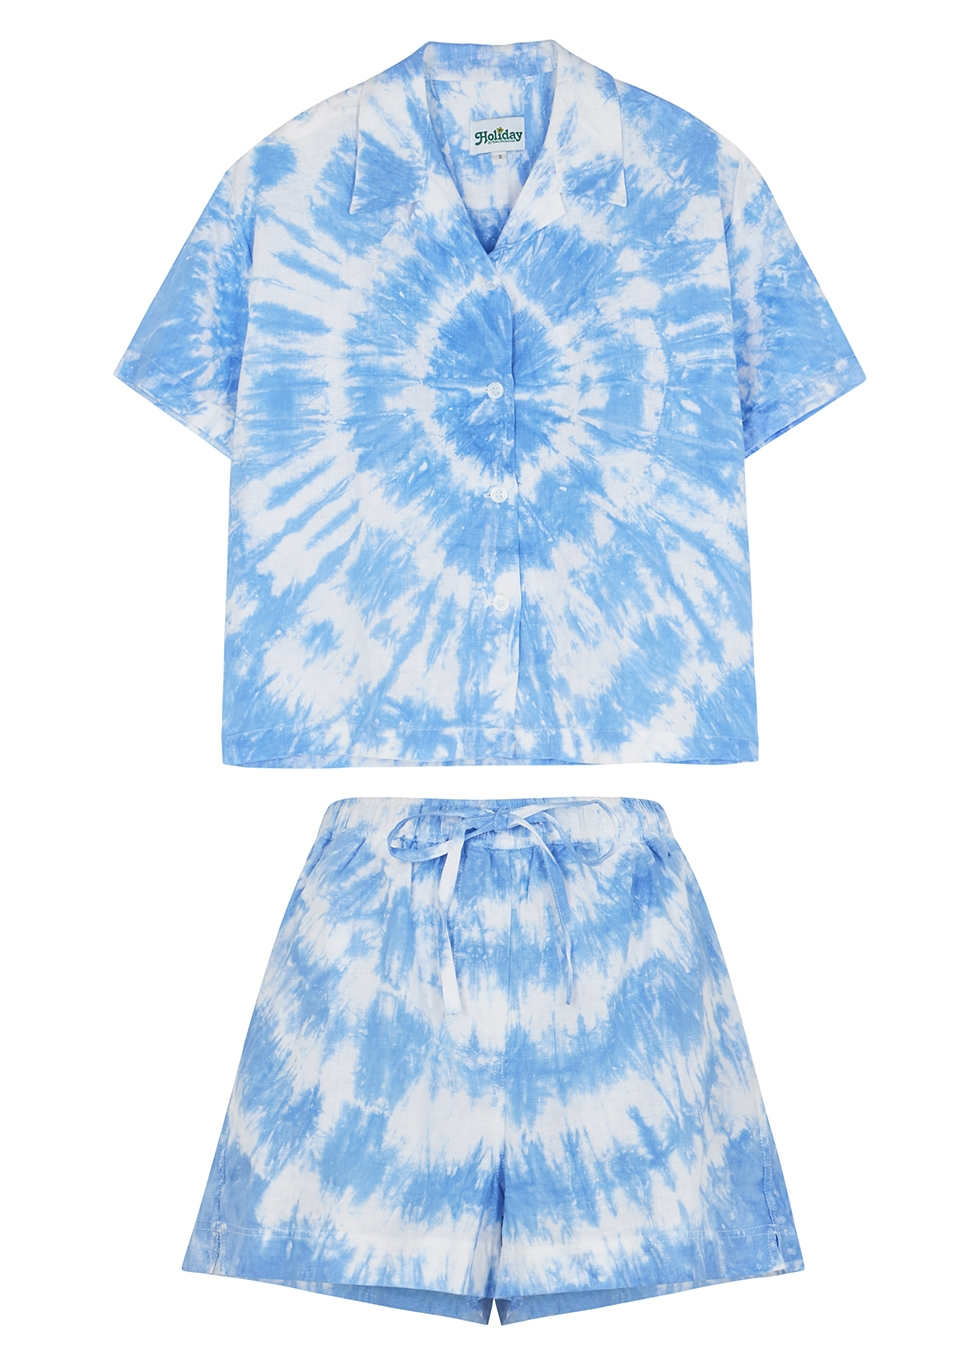 Tie-dyed linen co-ord set